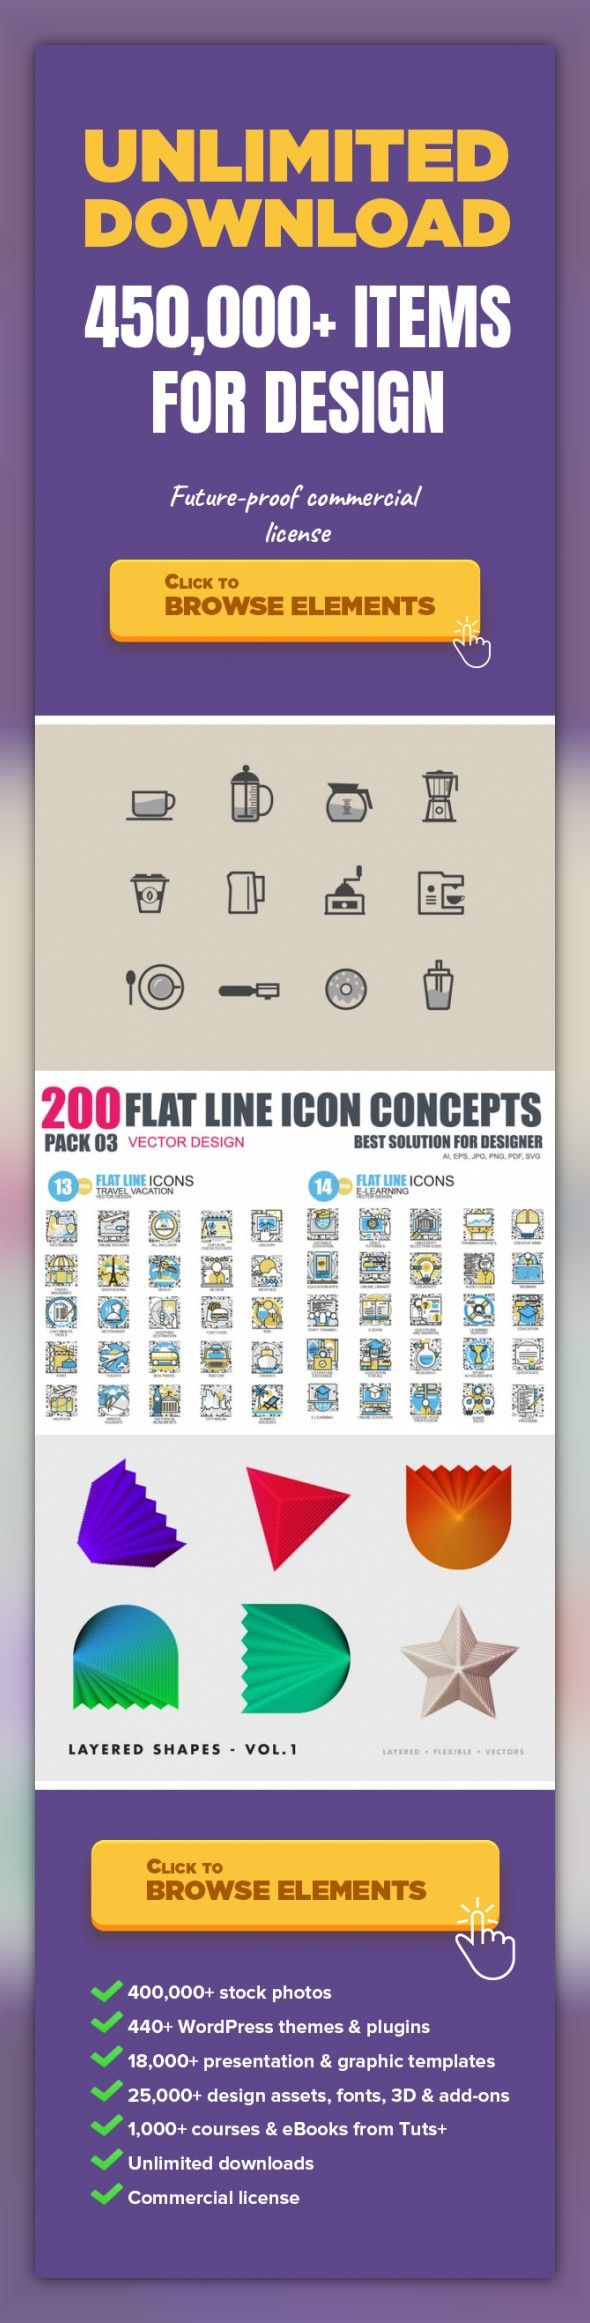 Best 25 machining symbols ideas on pinterest whats 11 11 mean 12 coffee icons and symbols graphics icons coffee cup mug grinder cafetiere blender machine cafe tea drink beverage here we have some handy biocorpaavc